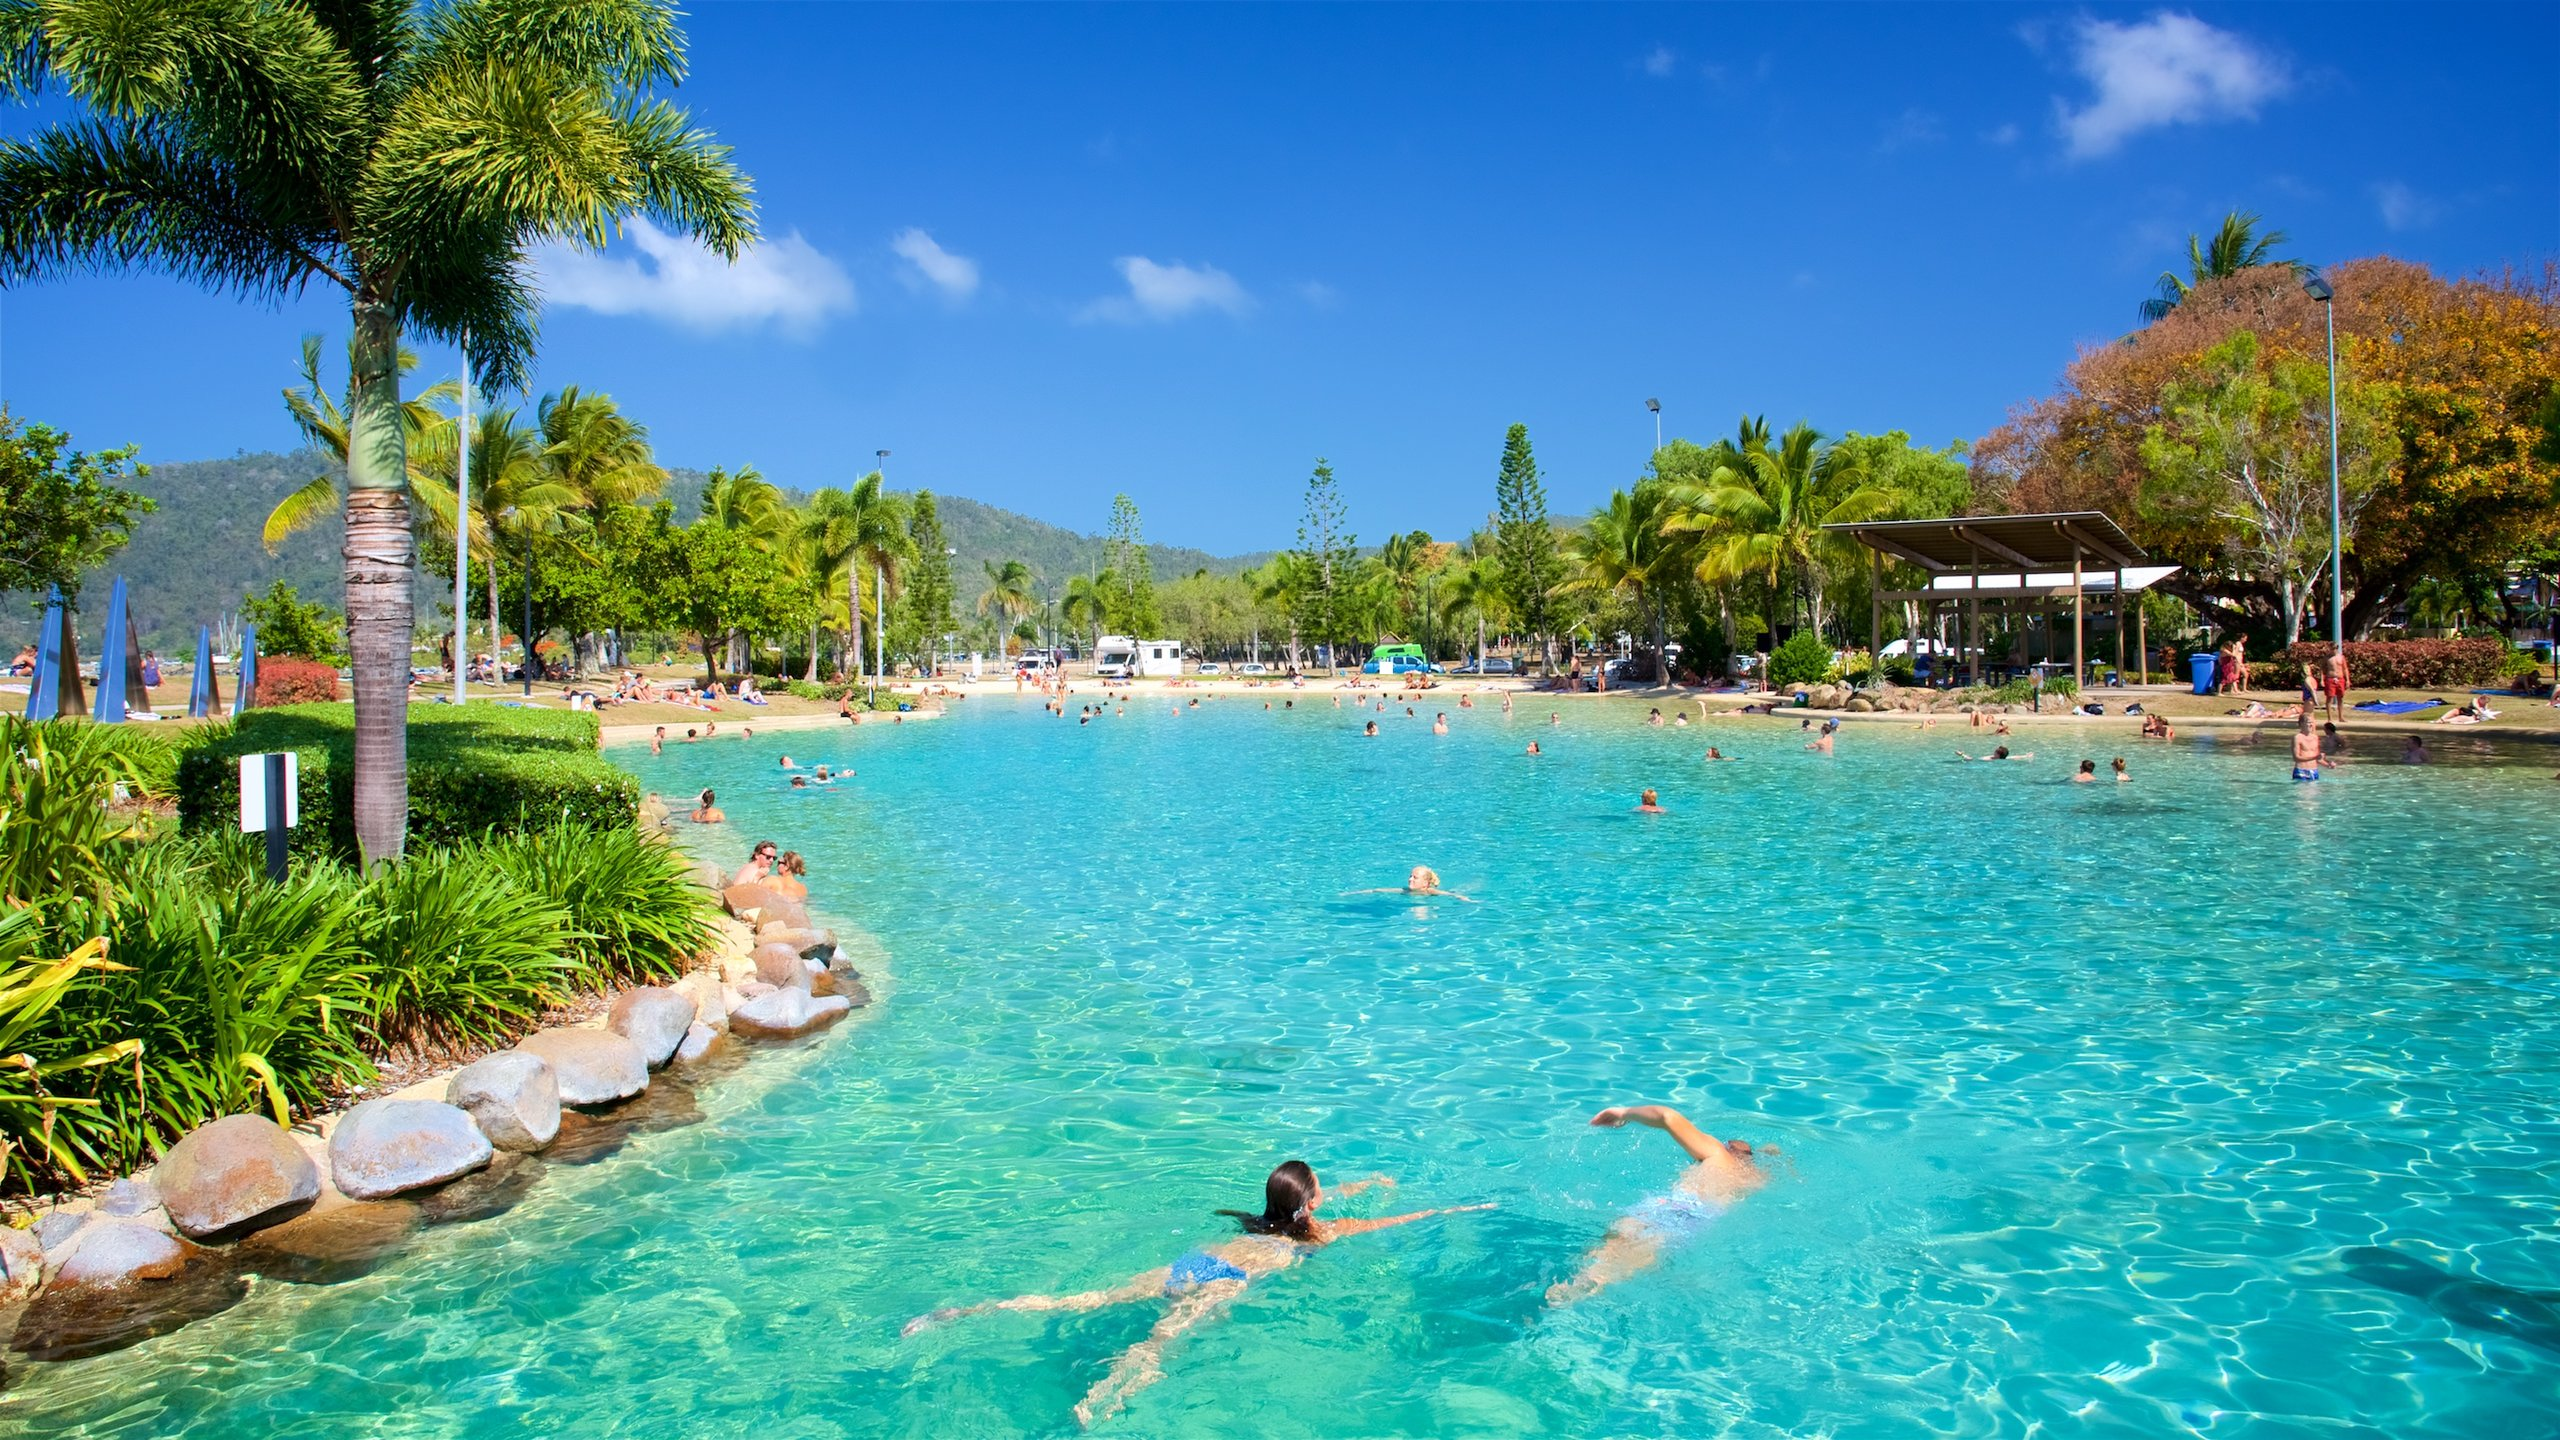 Spend the day with the family enjoying the sheltered waters of Airlie Beach's own tropical oasis, surrounded by landscaped gardens and grassy picnic areas.